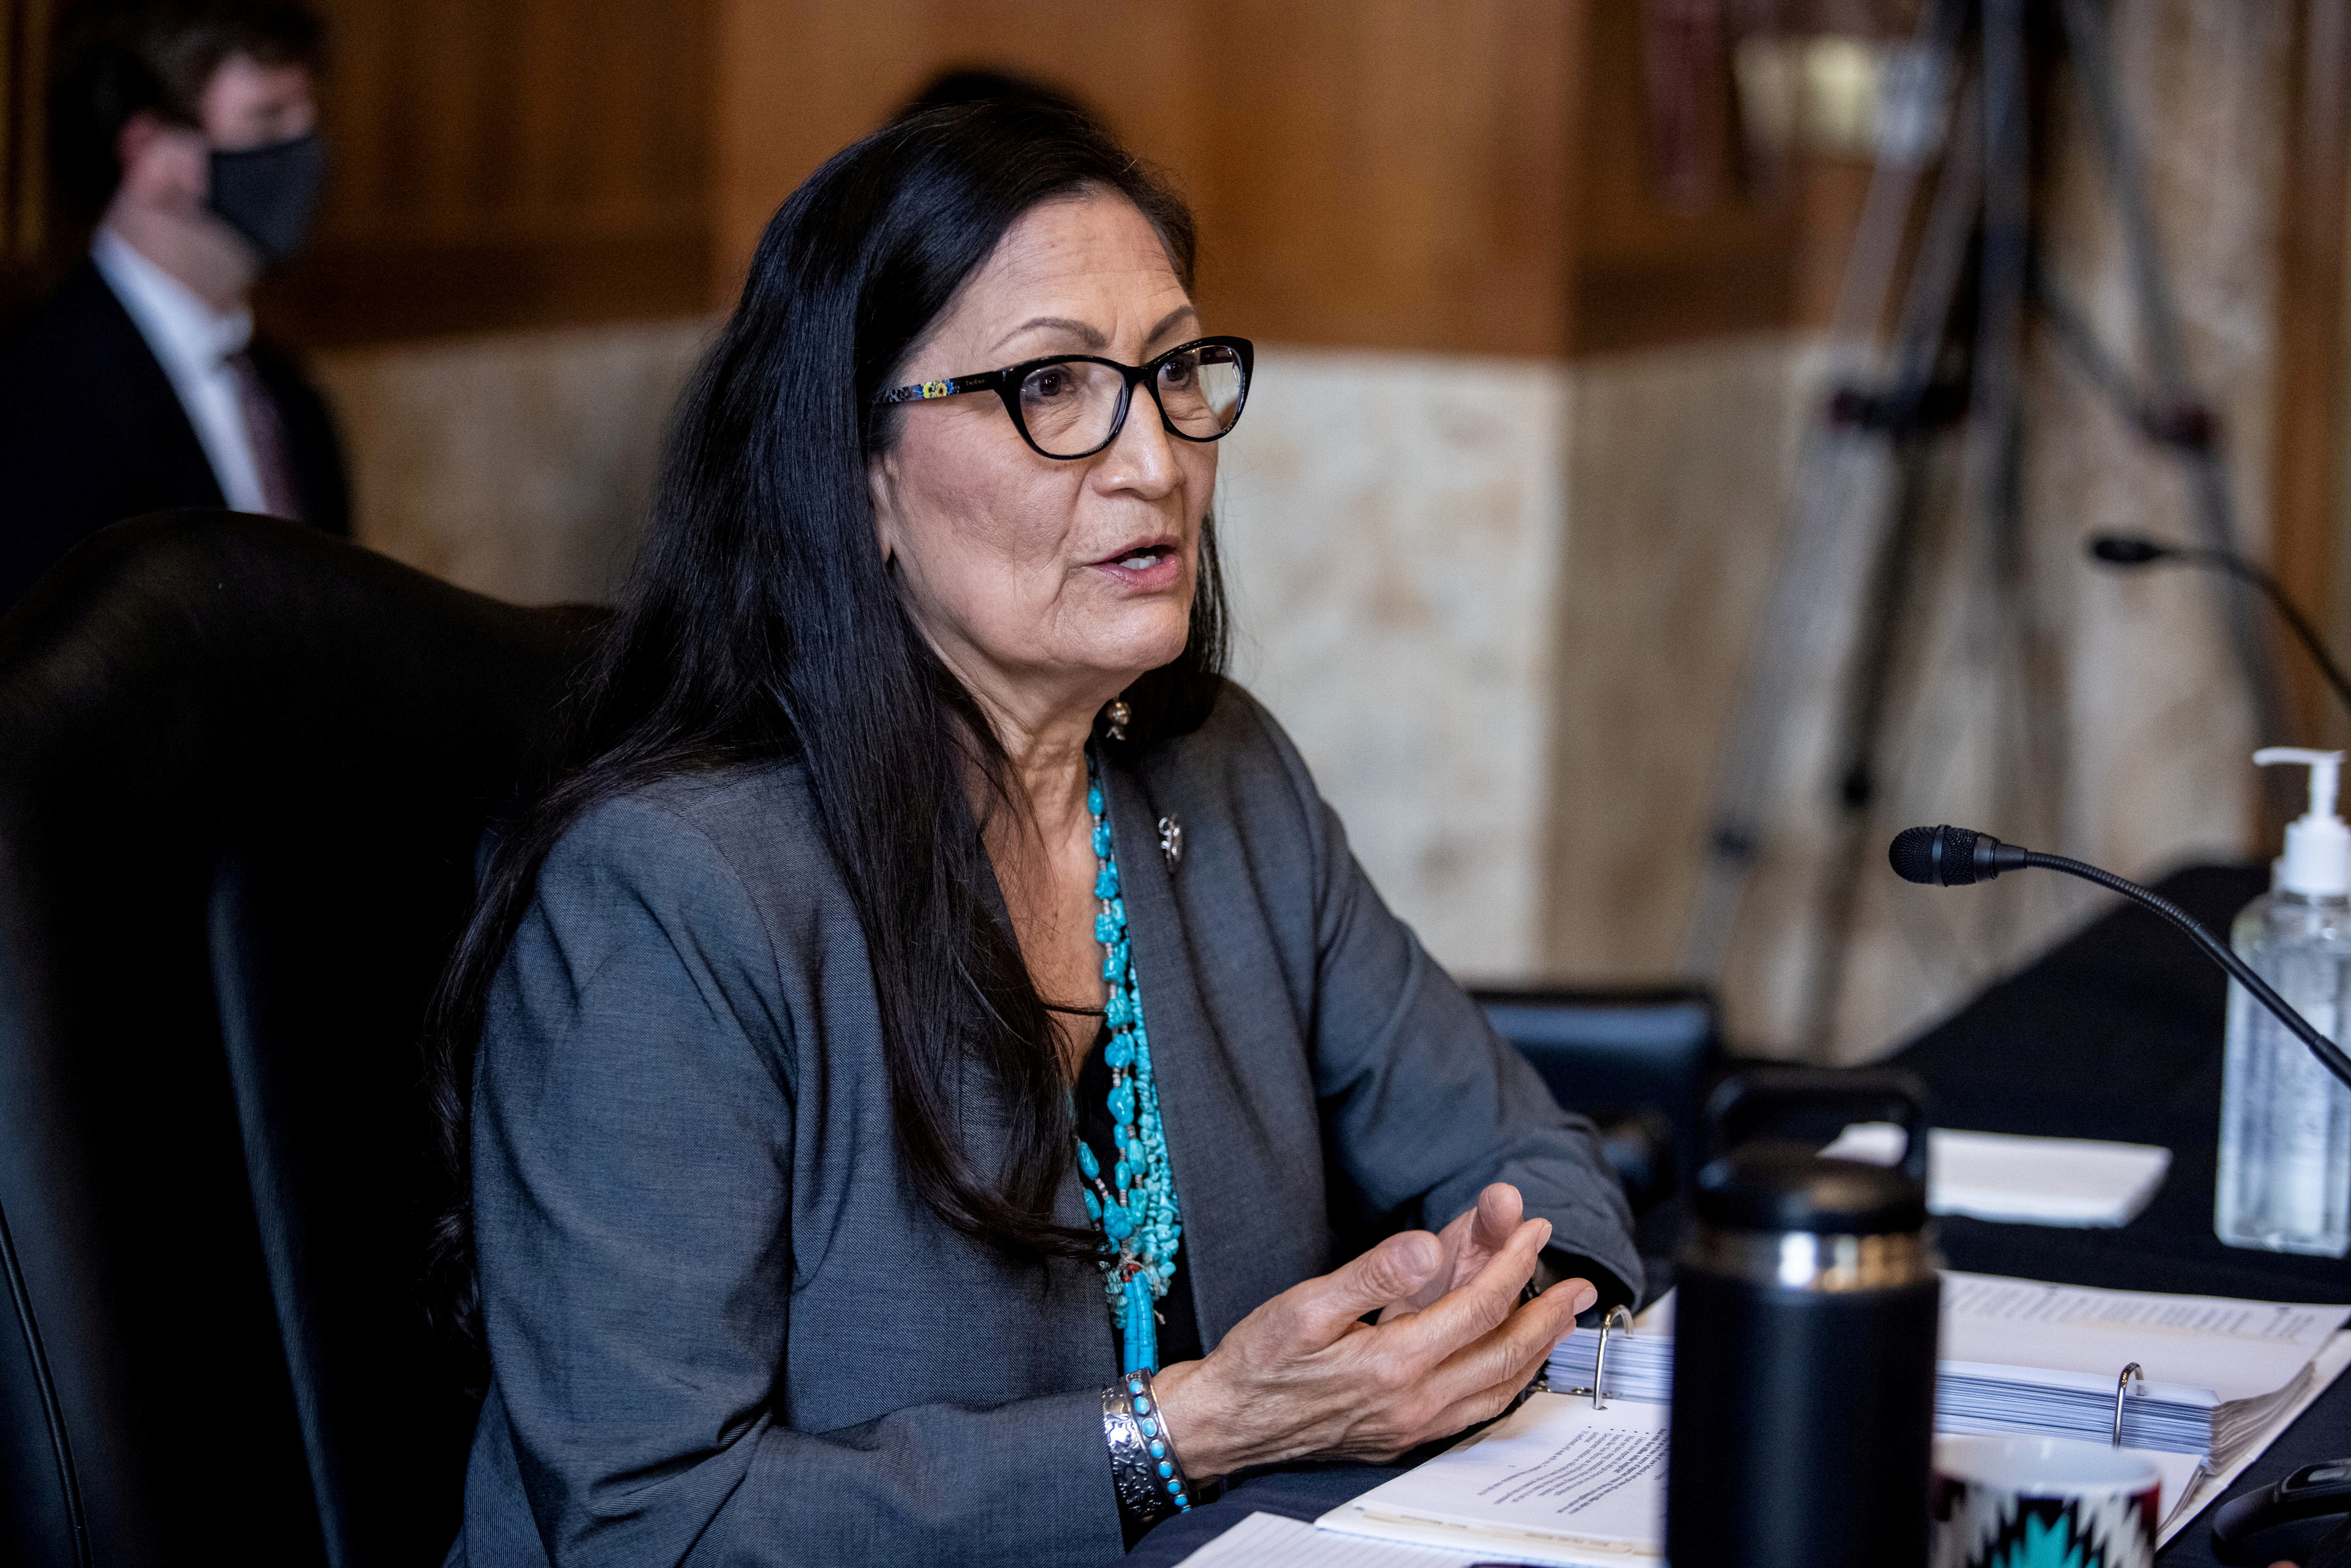 U.S. Rep. Deb Haaland speaks during a Senate Committee on Energy and Natural Resources hearing on her nomination to be Interior Secretary on Capitol Hill in Washington, DC, U.S. February 23, 2021.    Graeme Jennings/Pool via REUTERS/File Photo